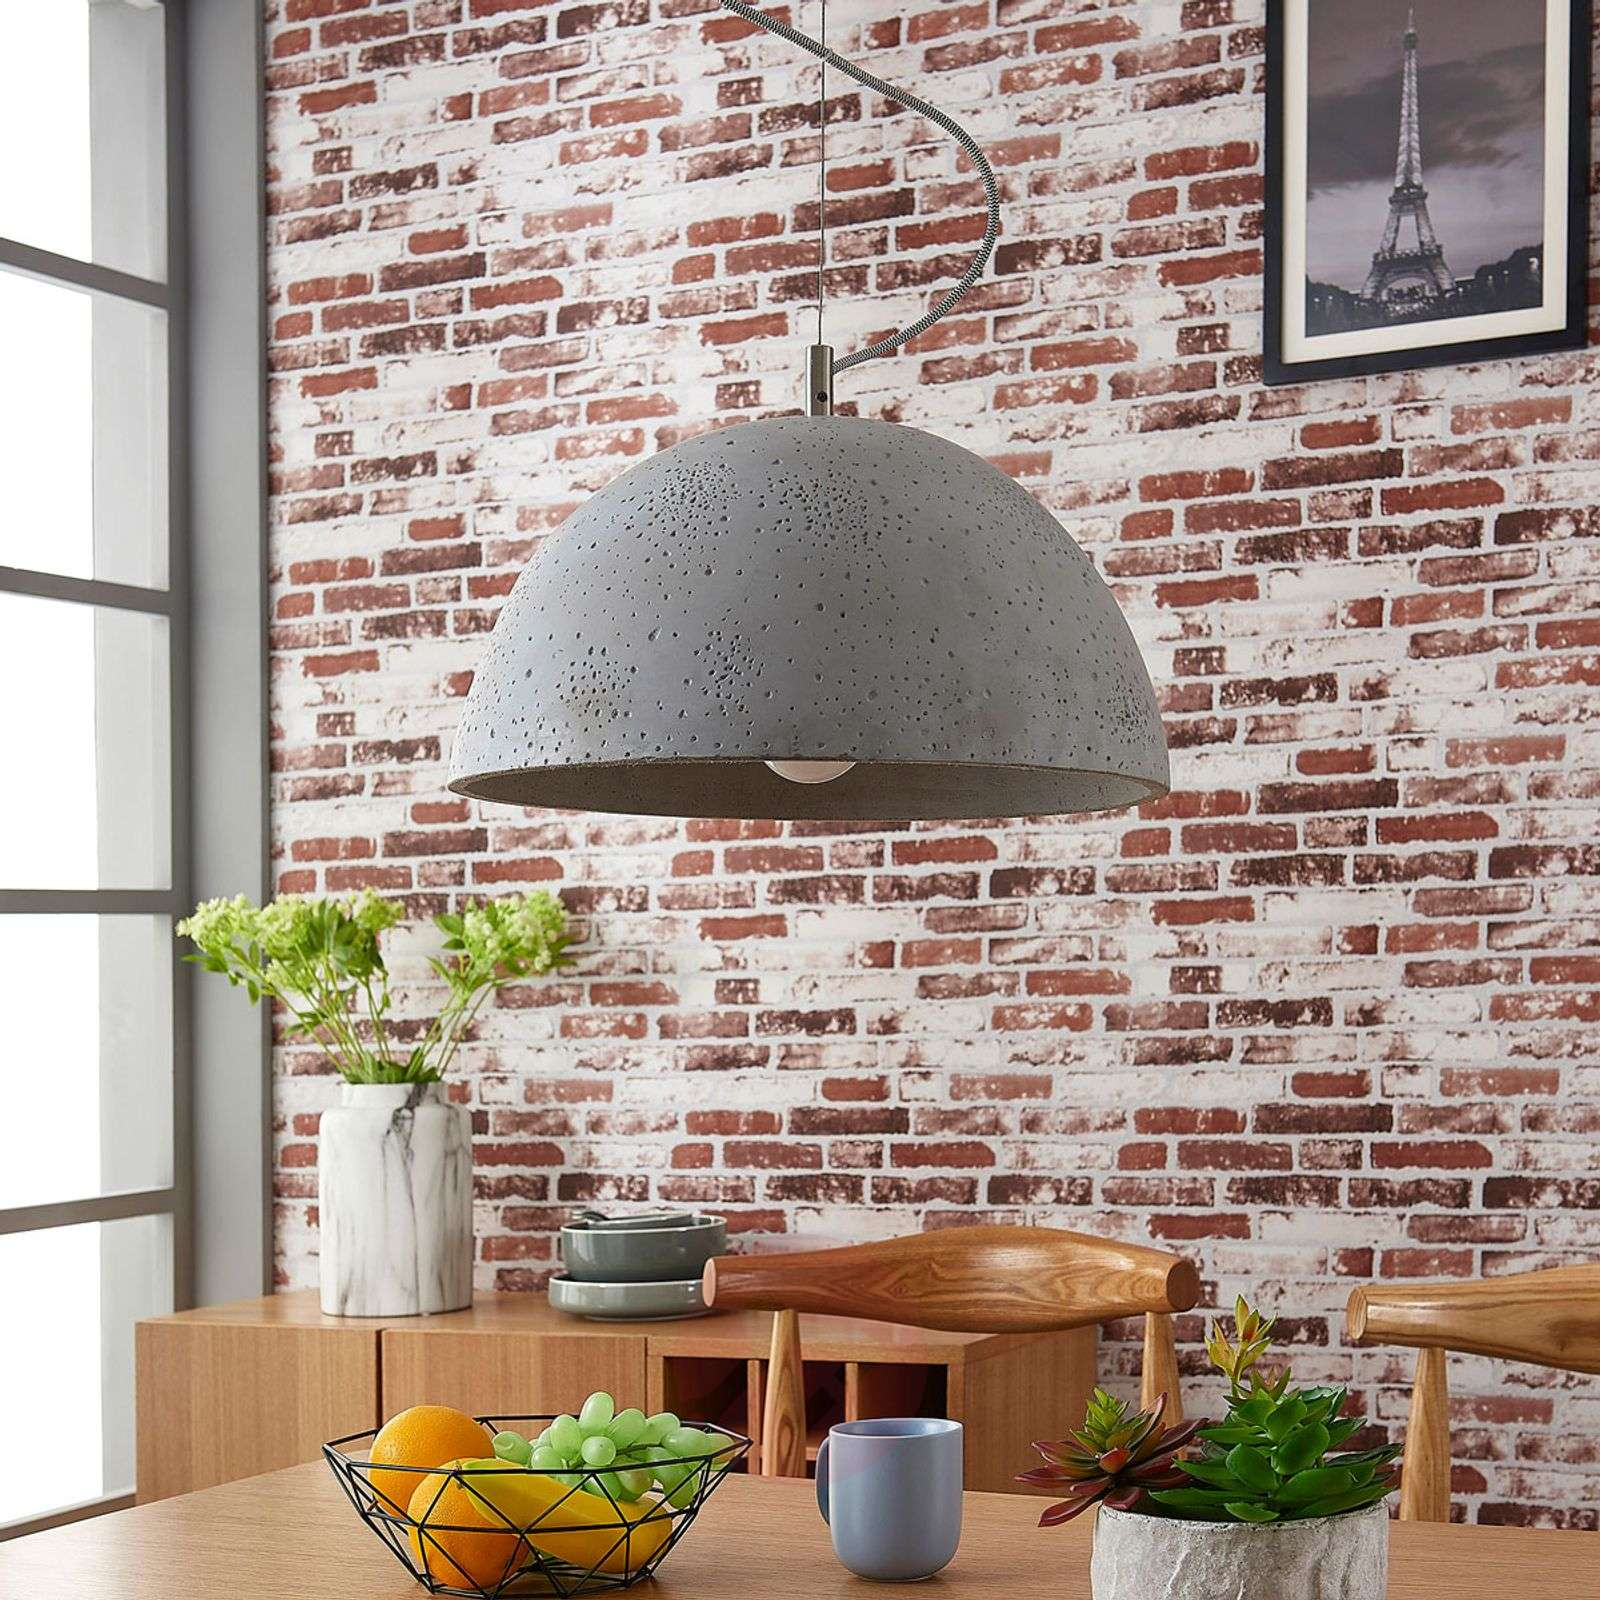 Jelin pendant lamp with concrete lampshade-9621012-01